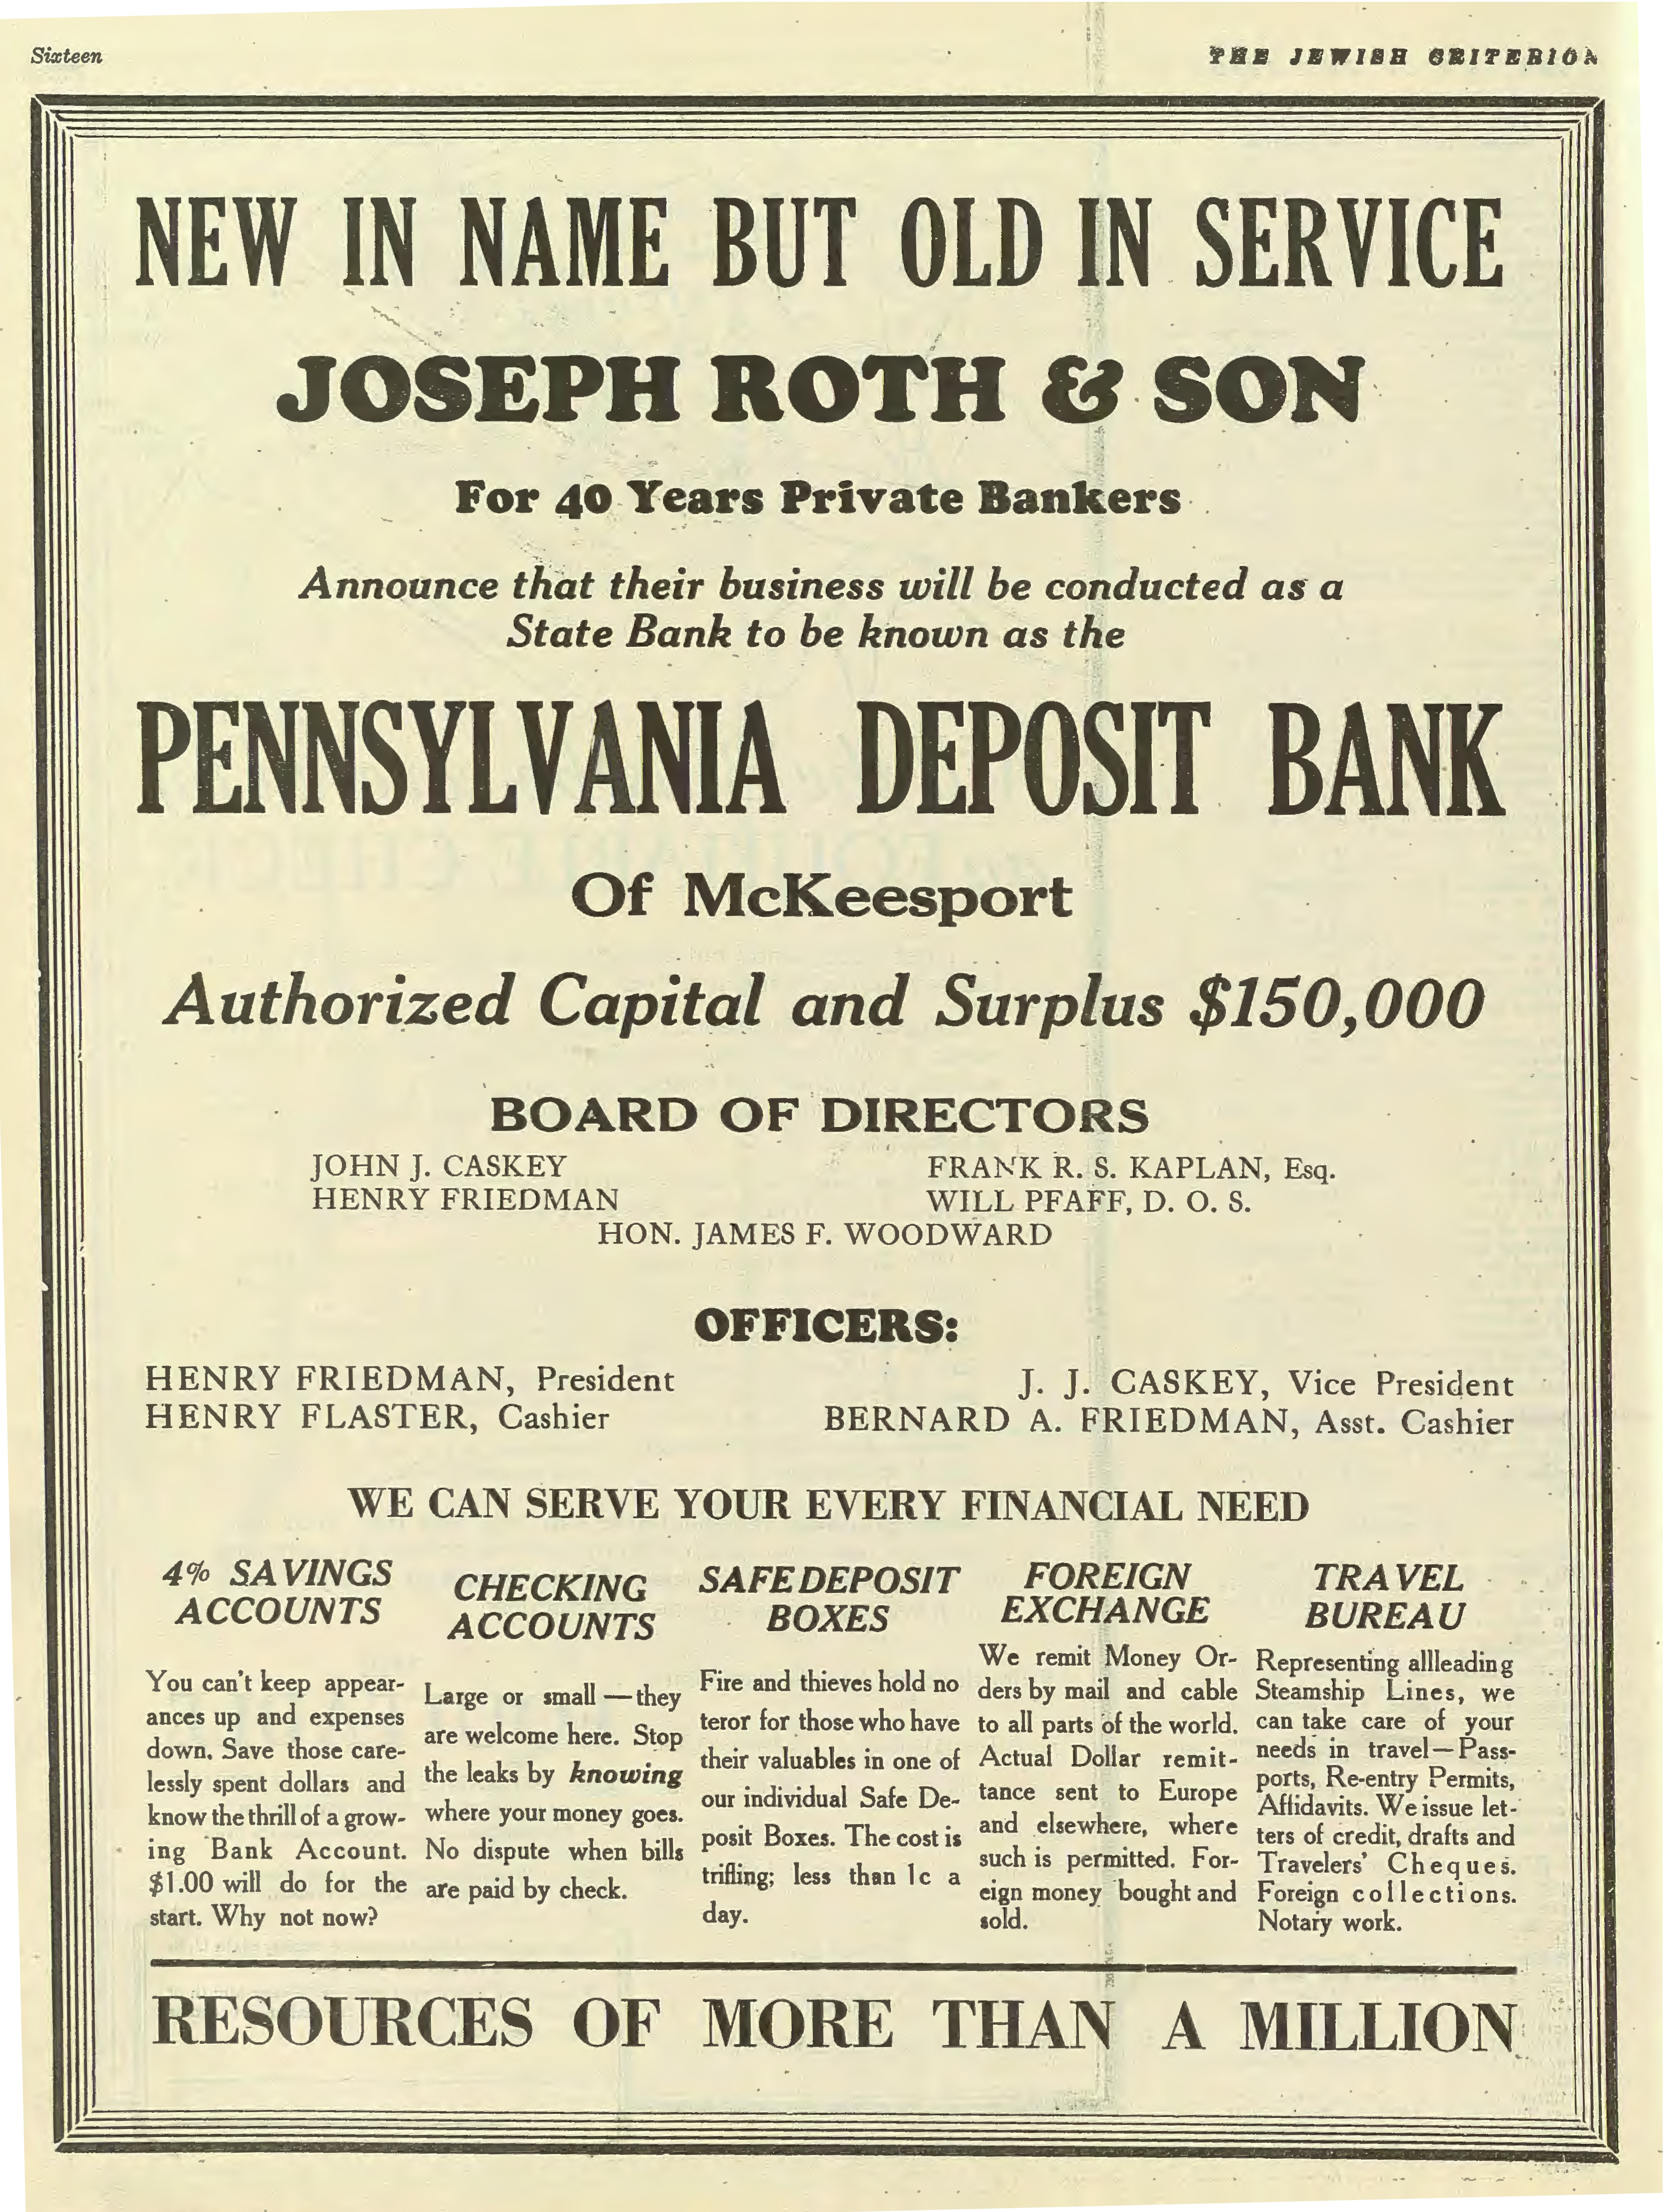 After 40 years as a private institution, the foreign bank Joseph Roth and Son of McKeesport, Pa. became a state bank in 1928. Jewish Criterion, March 2, 1928, page 16, Pittsburgh Jewish Newspaper Project.